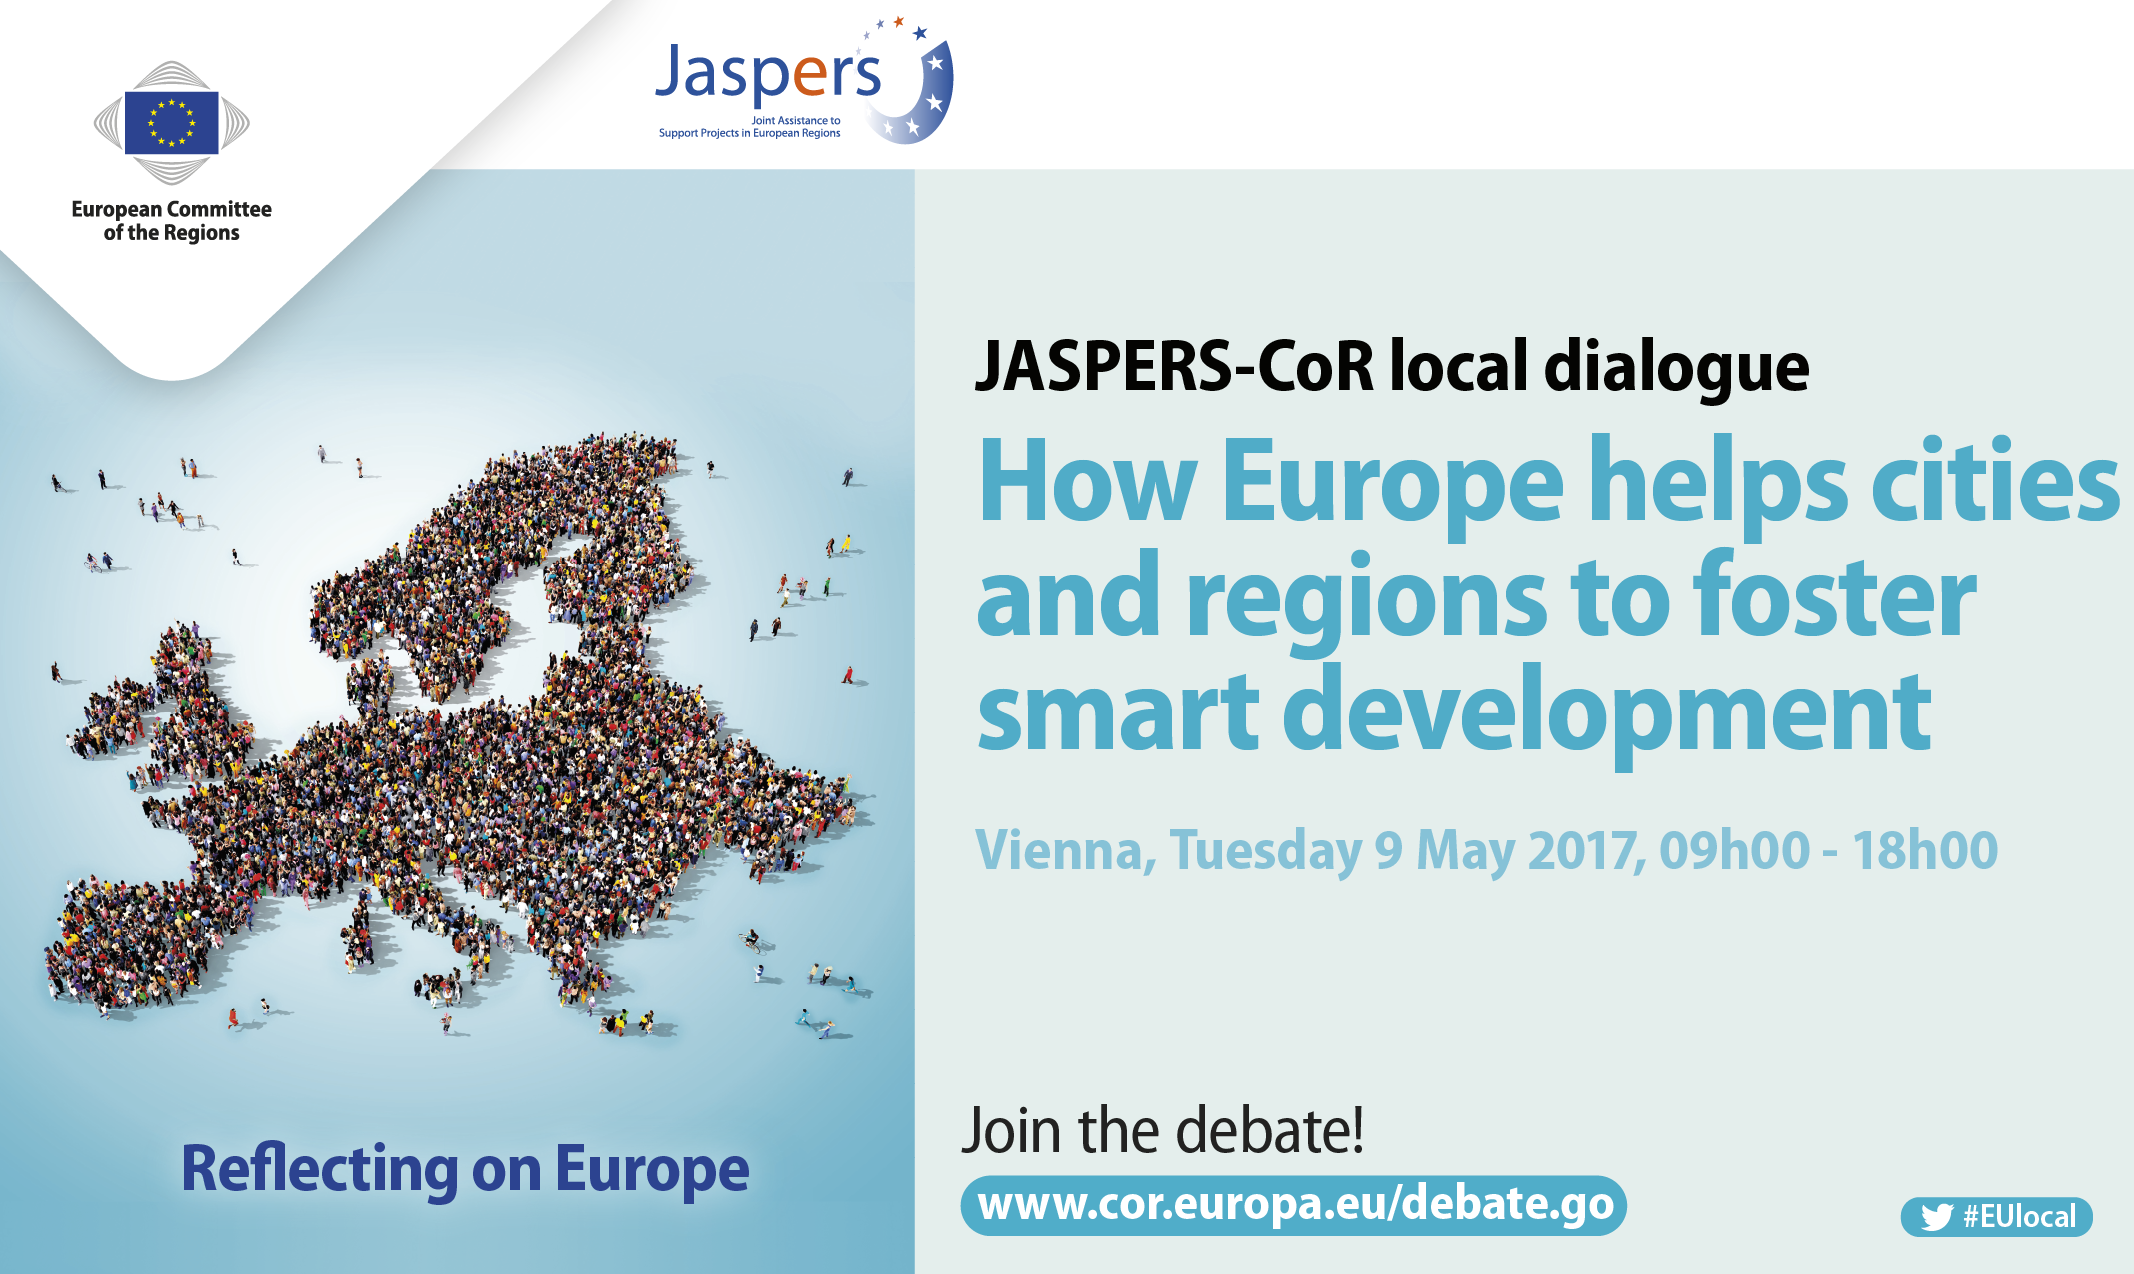 How Europe helps cities and regions to foster smart development